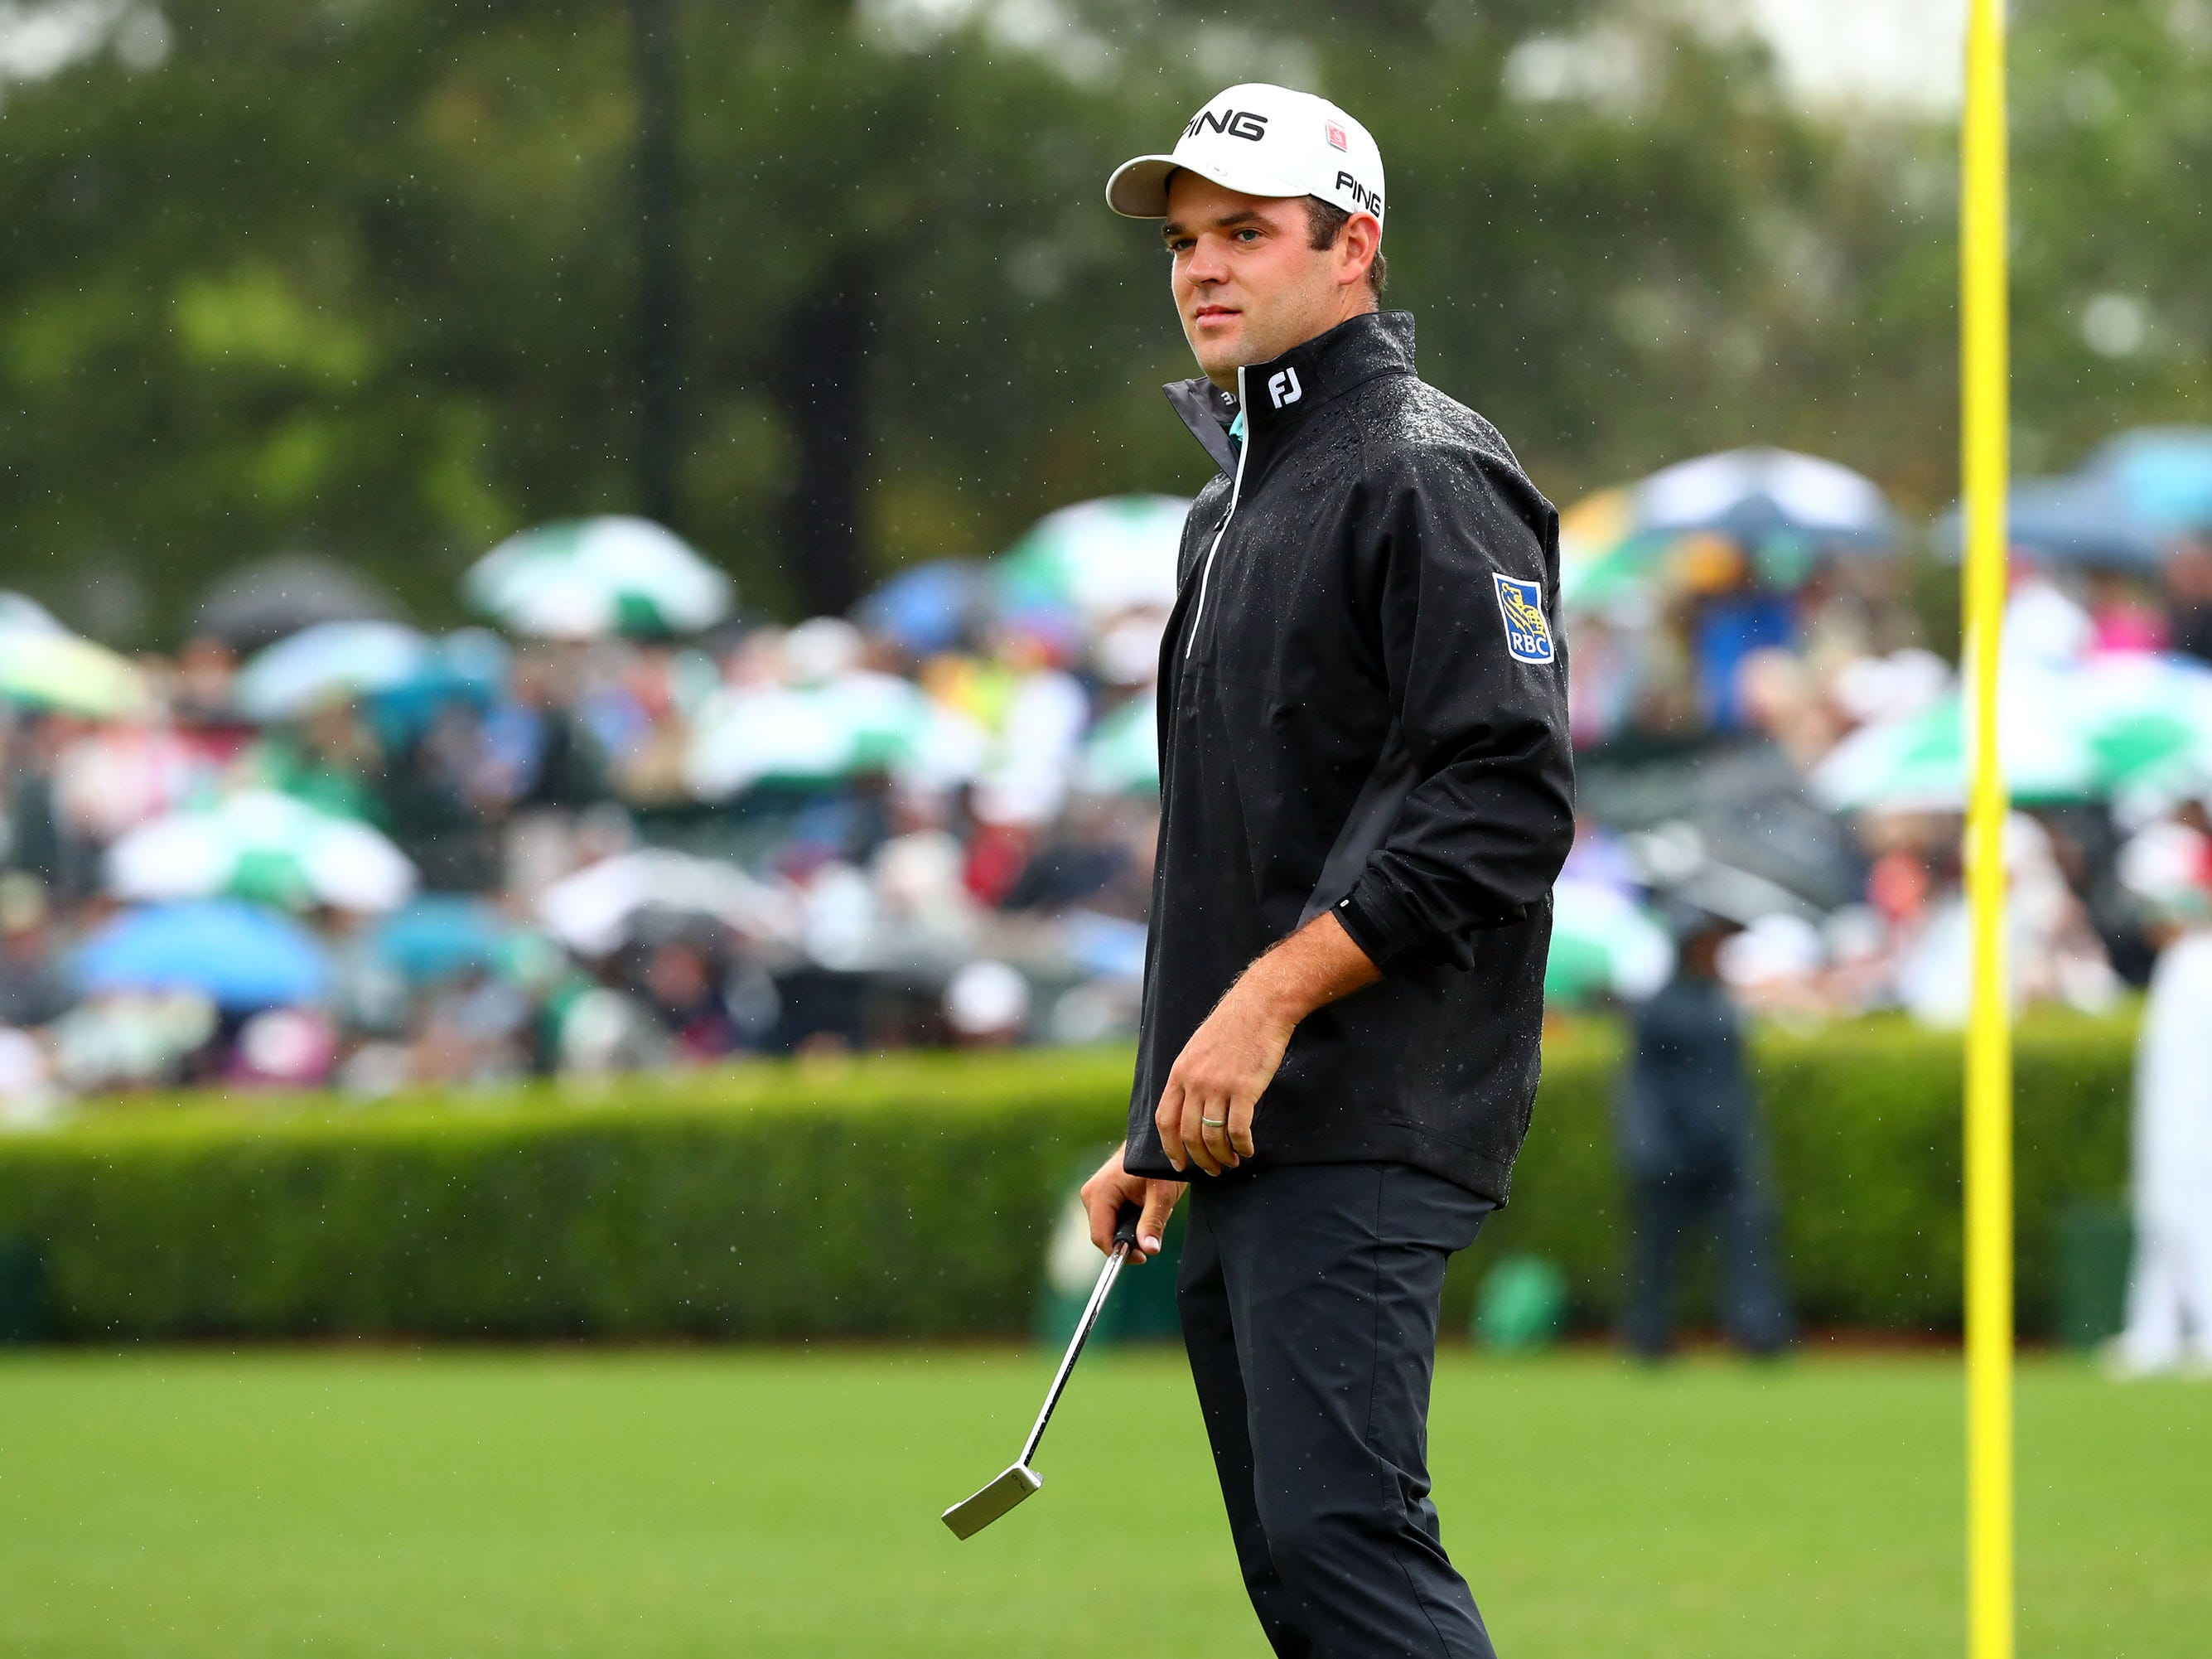 Apr 9, 2019; Augusta, GA, USA; Corey Conners putts at the practice facility during a practice round for The Masters golf tournament at Augusta National Golf Club. Mandatory Credit: Rob Schumacher-USA TODAY Sports